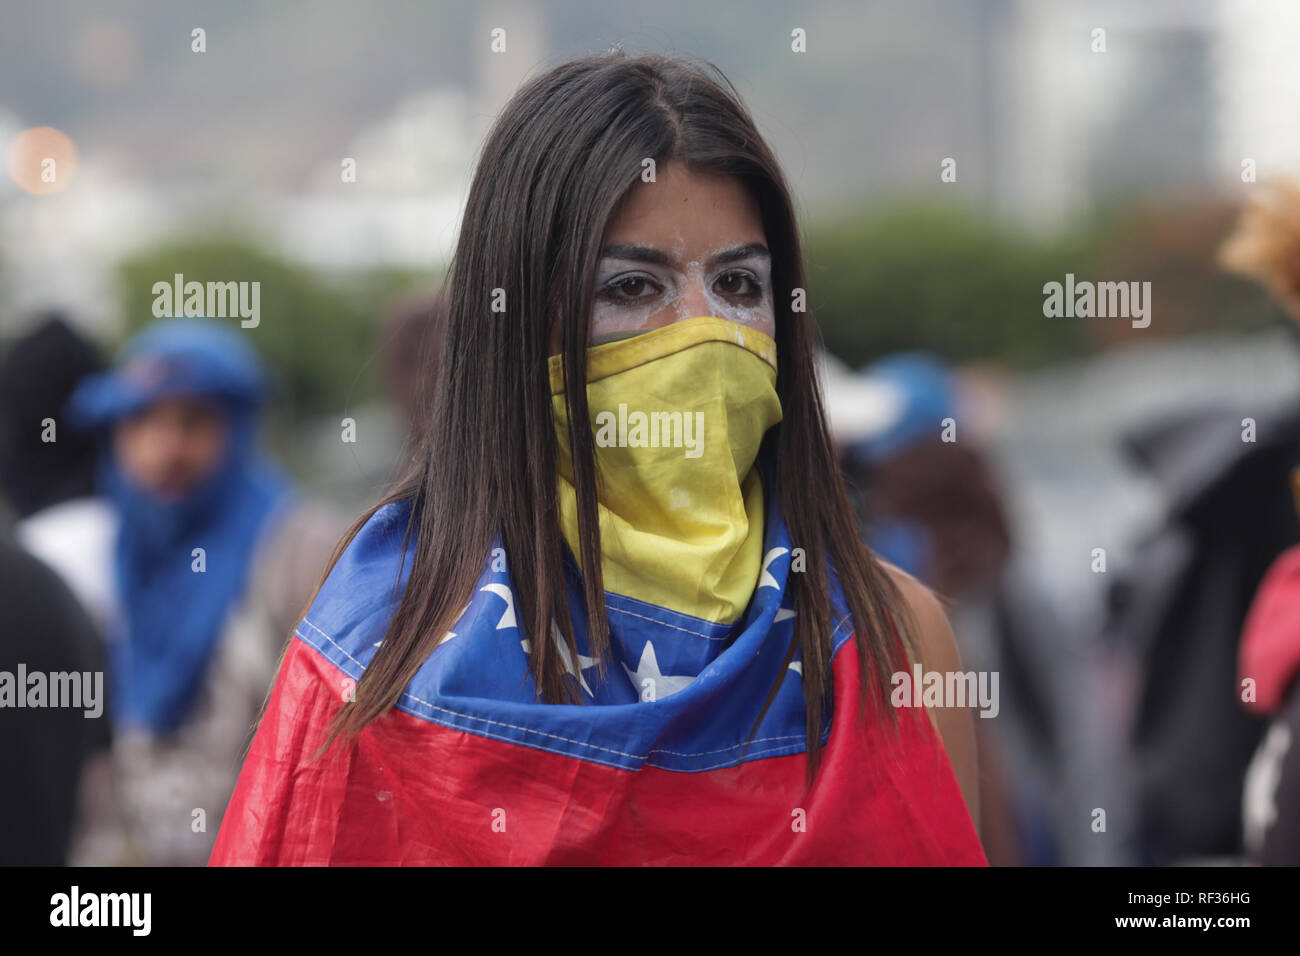 Caracas, Venezuela. 23rd Jan, 2019. A woman has masked herself with a Venezuelan flag and is protesting against the Venezuelan President Maduro. Venezuelan parliamentary president Guaidó has declared the socialist government of Maduro to be deprived of power and has proclaimed himself head of state in transition. Minutes later, US President Donald Trump recognized the opposition leader as the legitimate interim president of the corruption- and poverty-stricken country. dpa/Alamy Live News - Stock Image